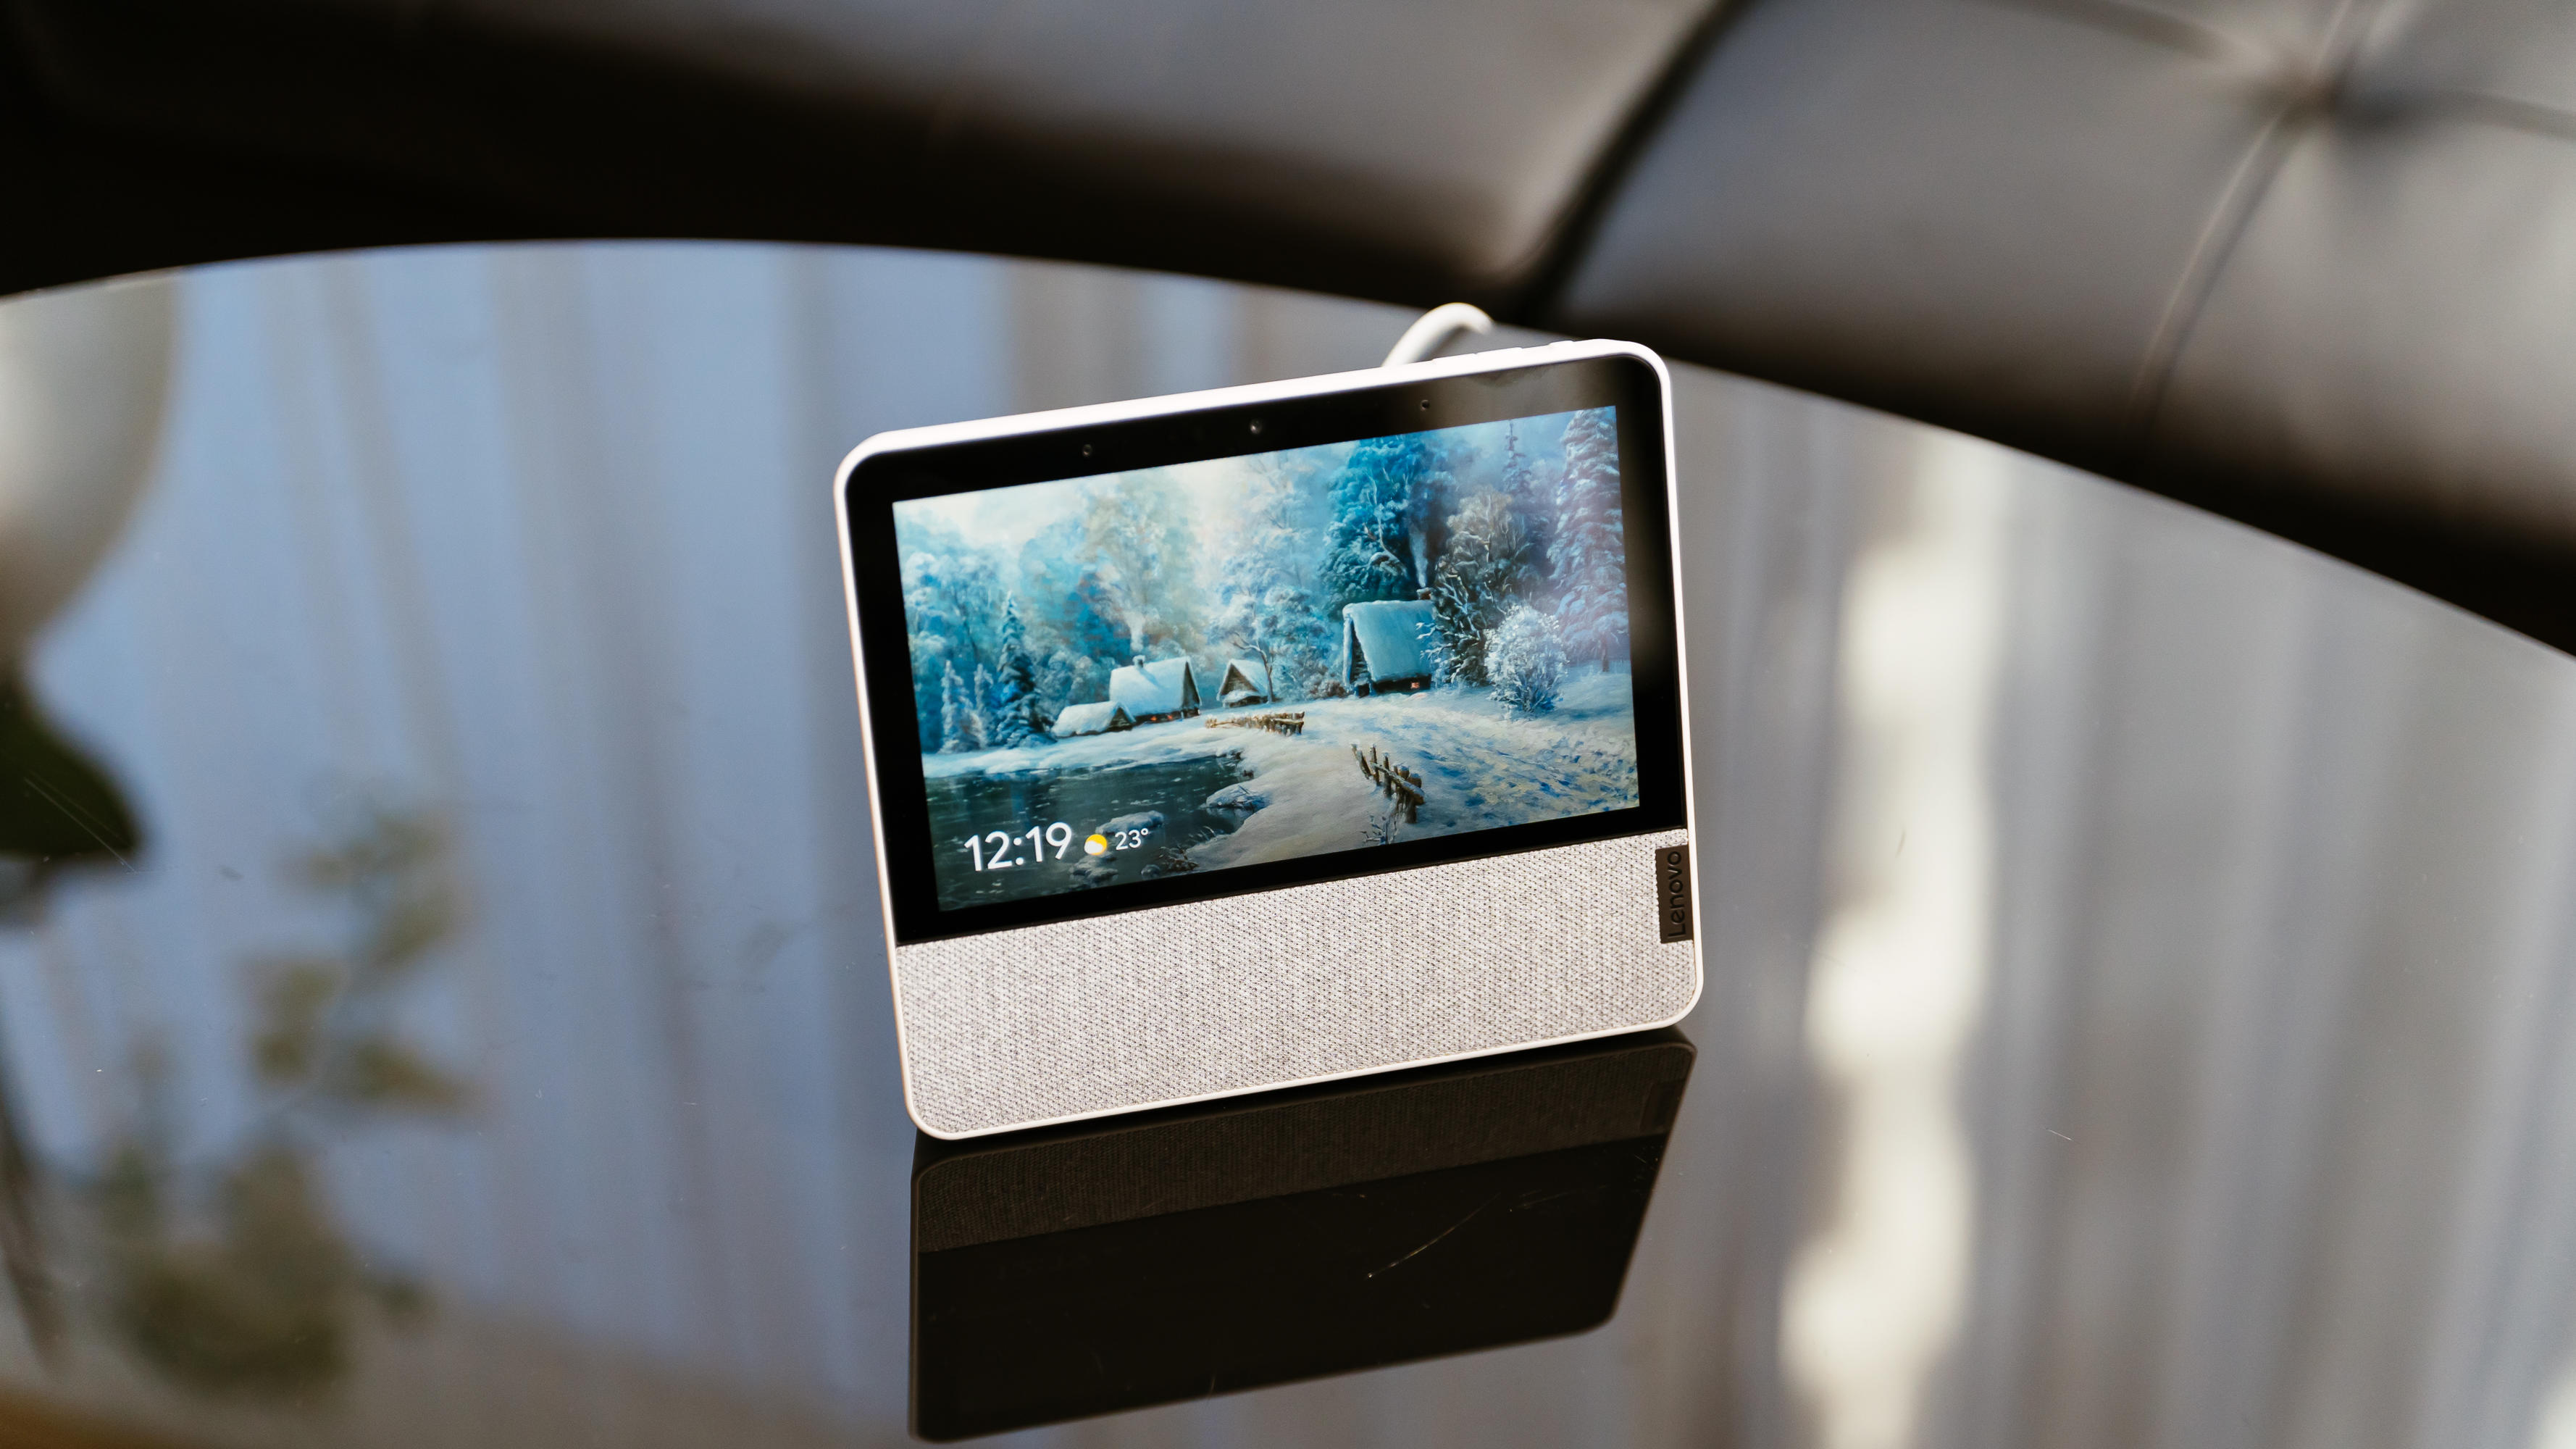 Video: Lenovo's new smart display looks to follow in the Nest Hub's footsteps